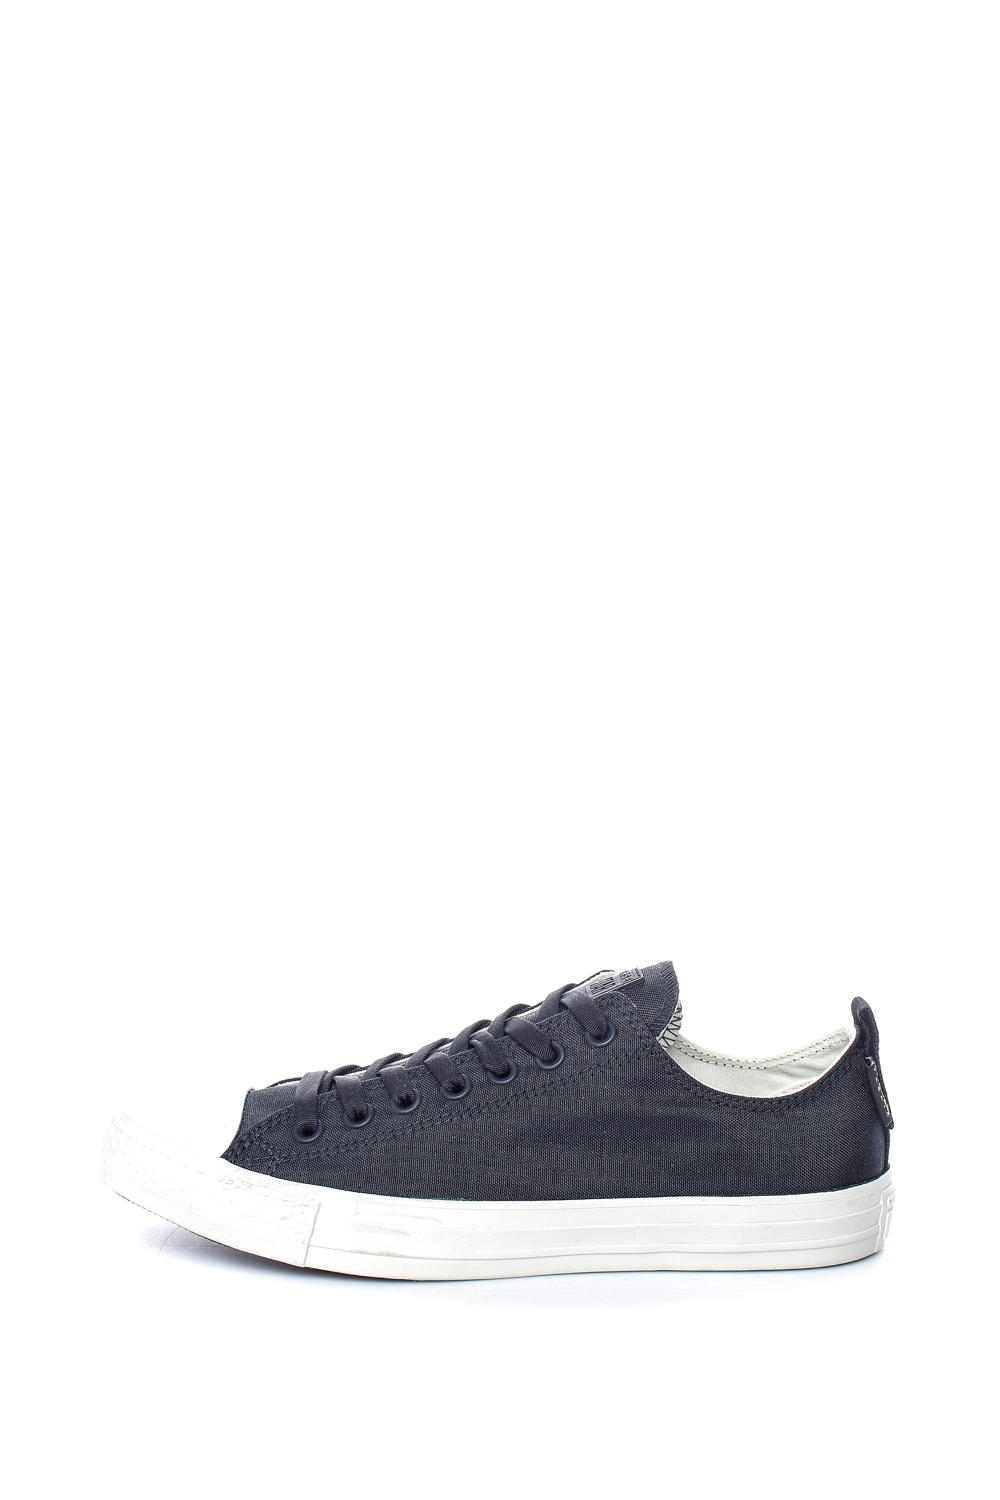 CONVERSE – Ανδρικά sneakers CONVERSE Chuck Taylor All Star μπλε-γκρι